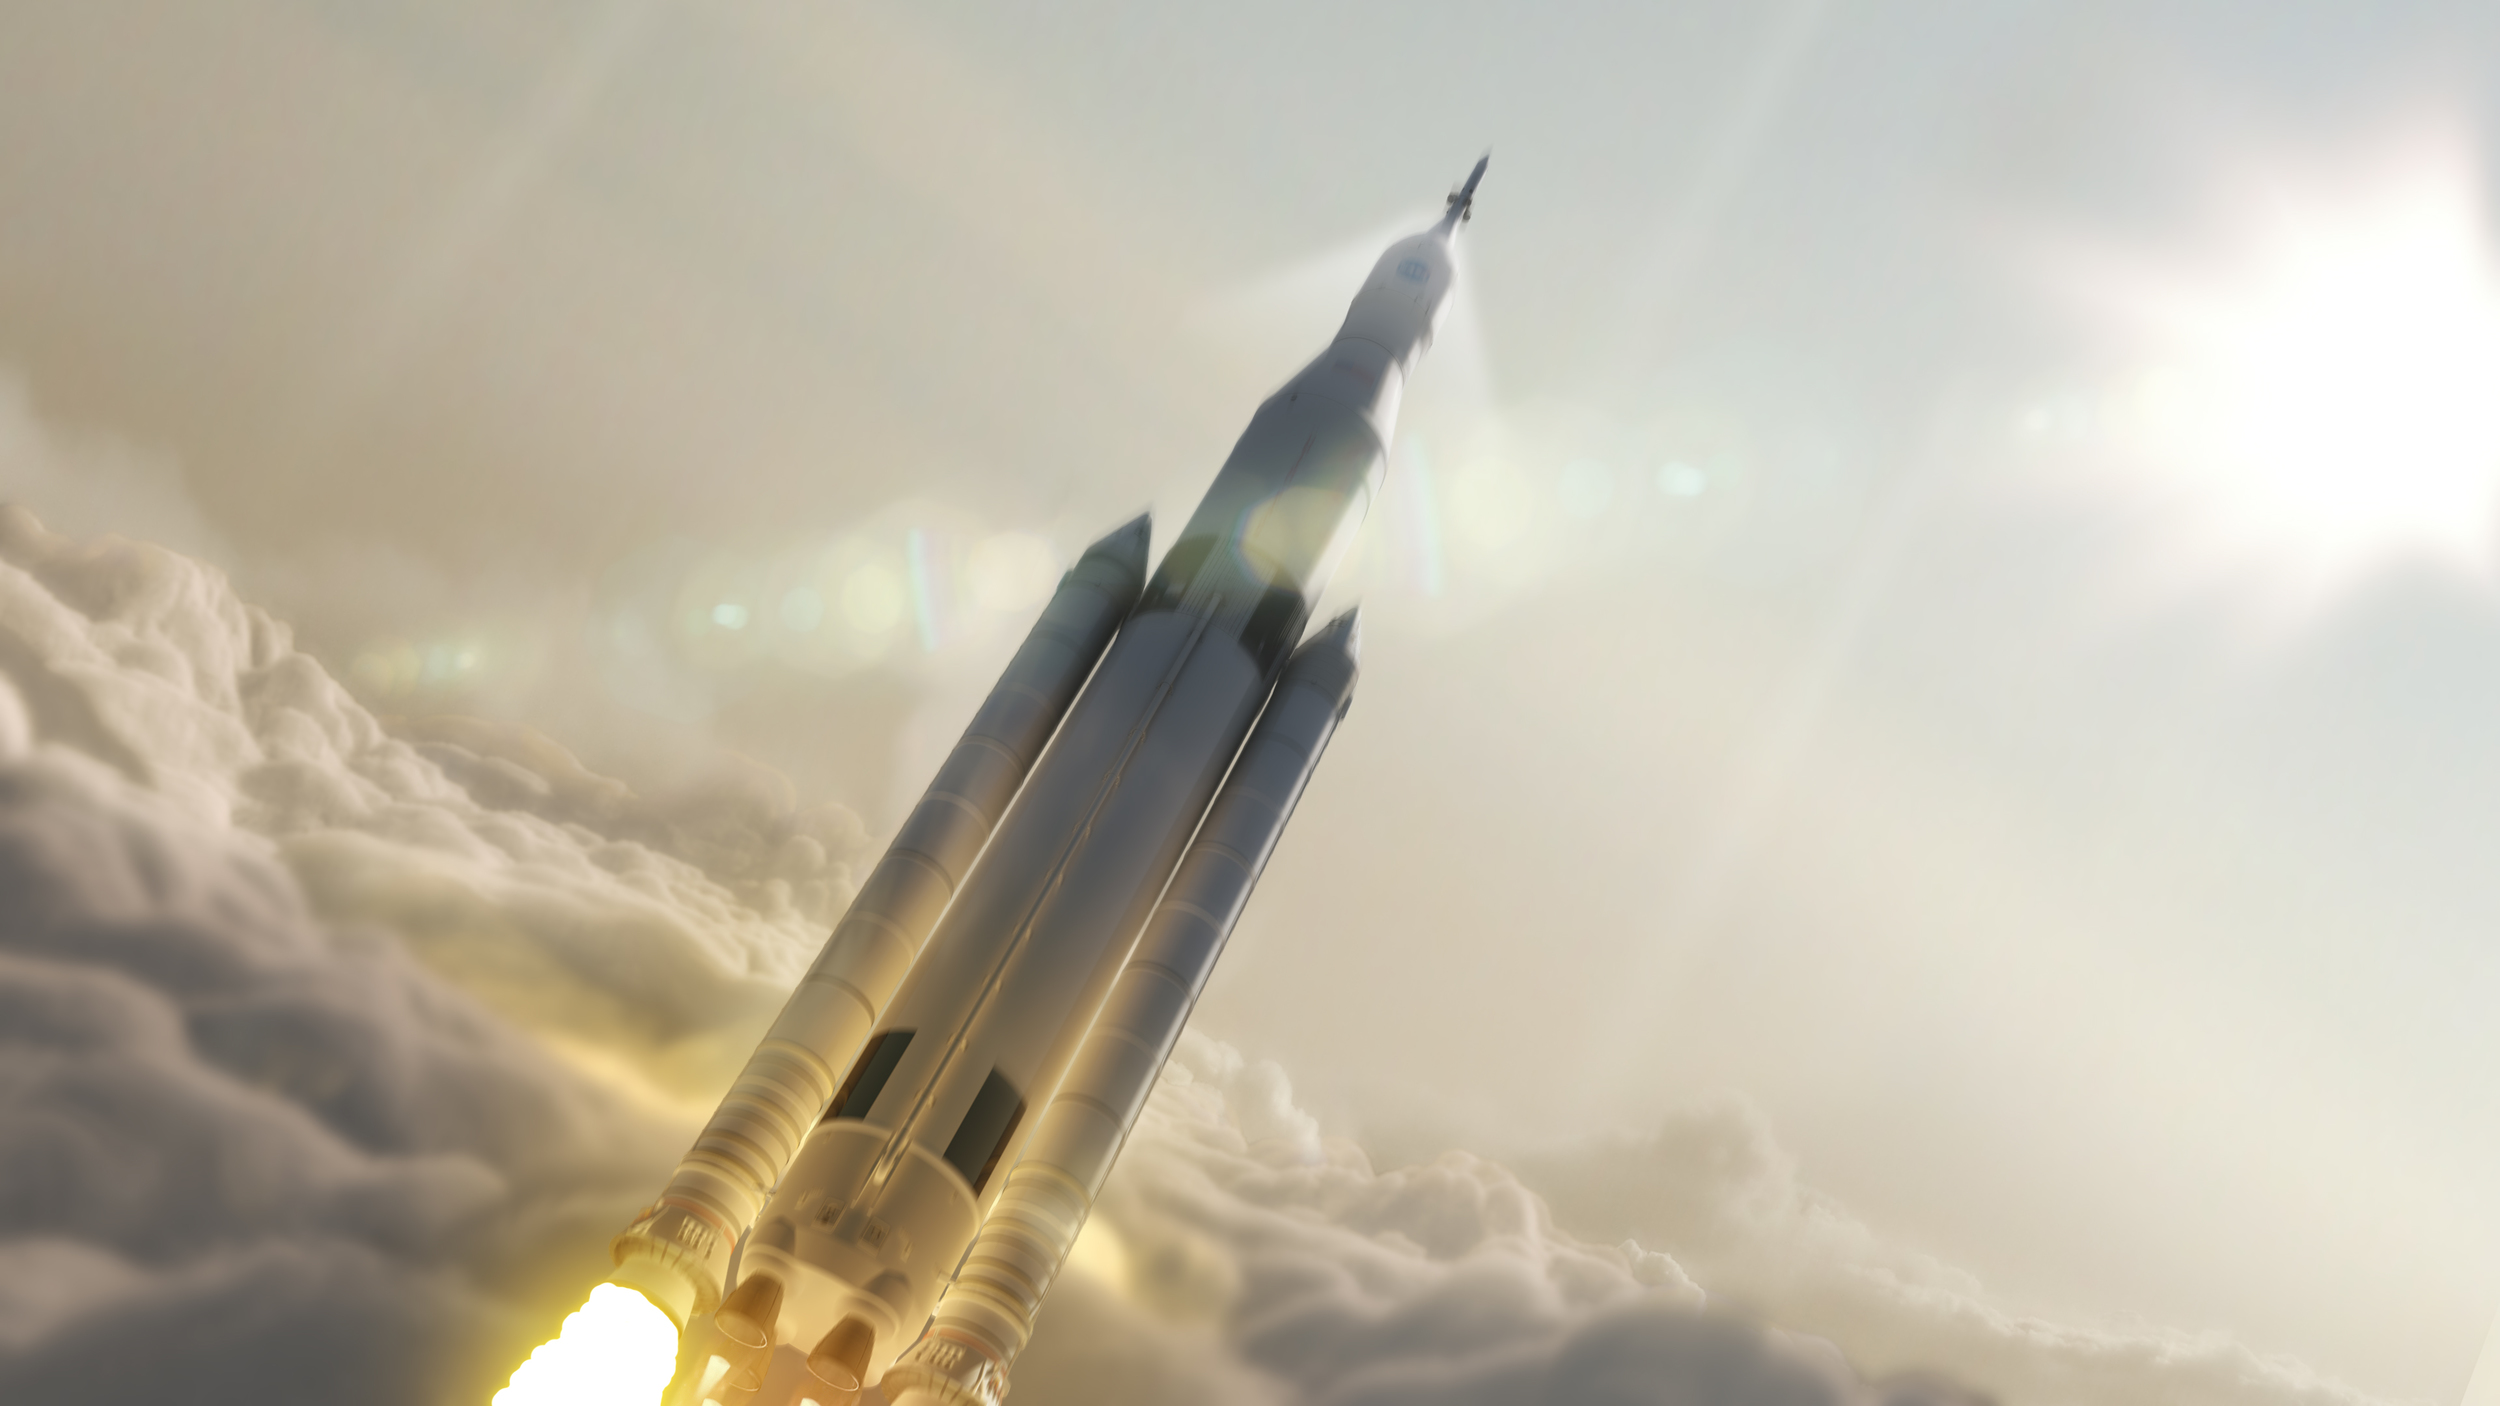 Exploring Space   NASA's Space Launch System enables human space exploration to the moon, to Mars, and beyond.   Learn more